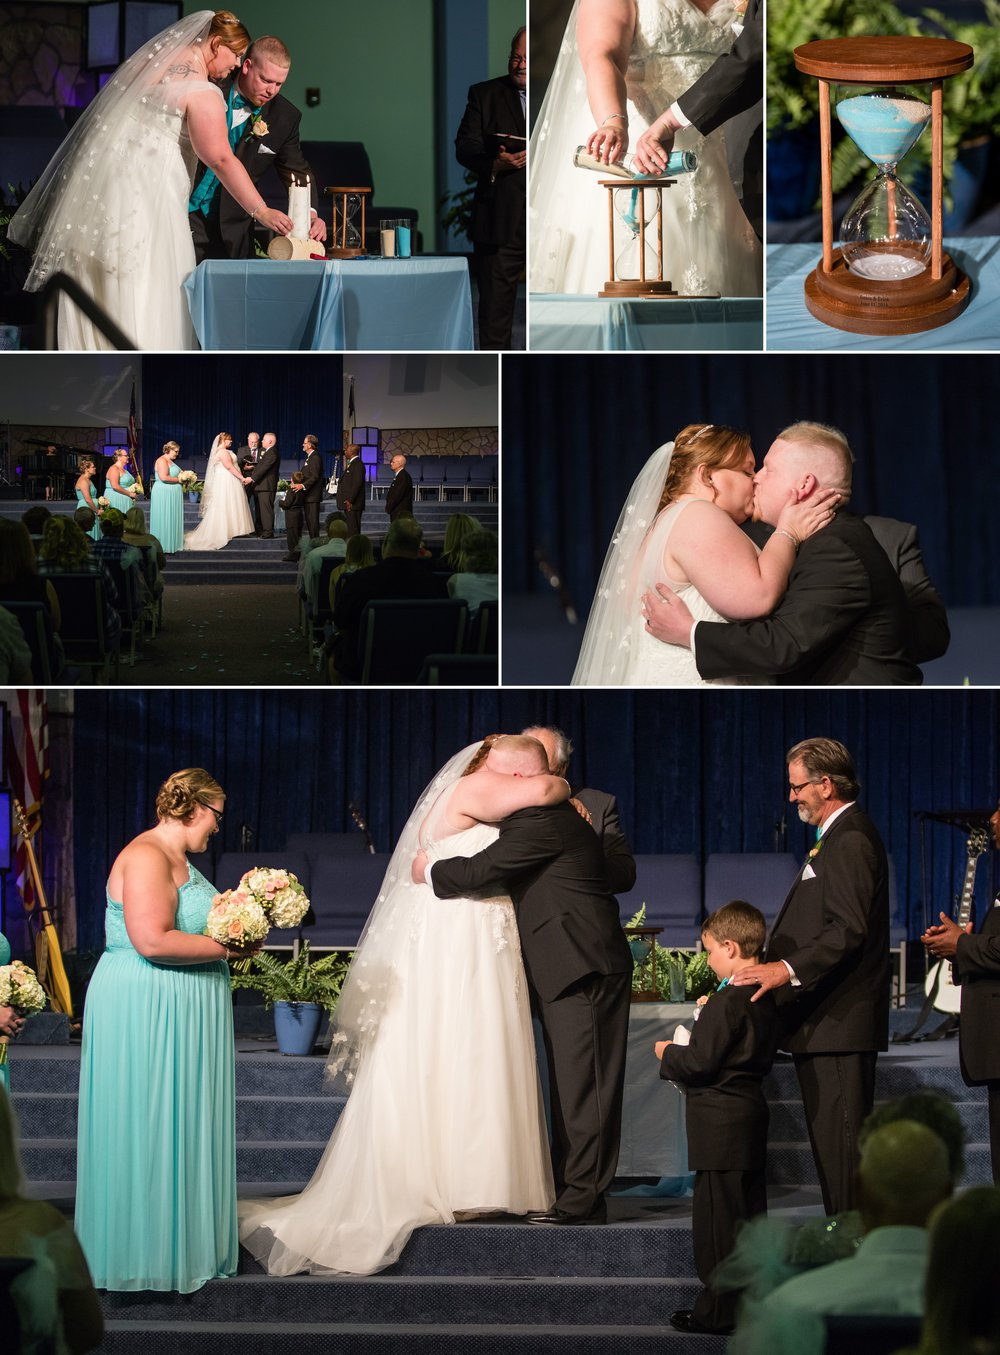 lighthouse-christian-ministries-wedding-ceremony-schiller-park-portraits-columbus-ohio-muschlitz-photography-006.JPG